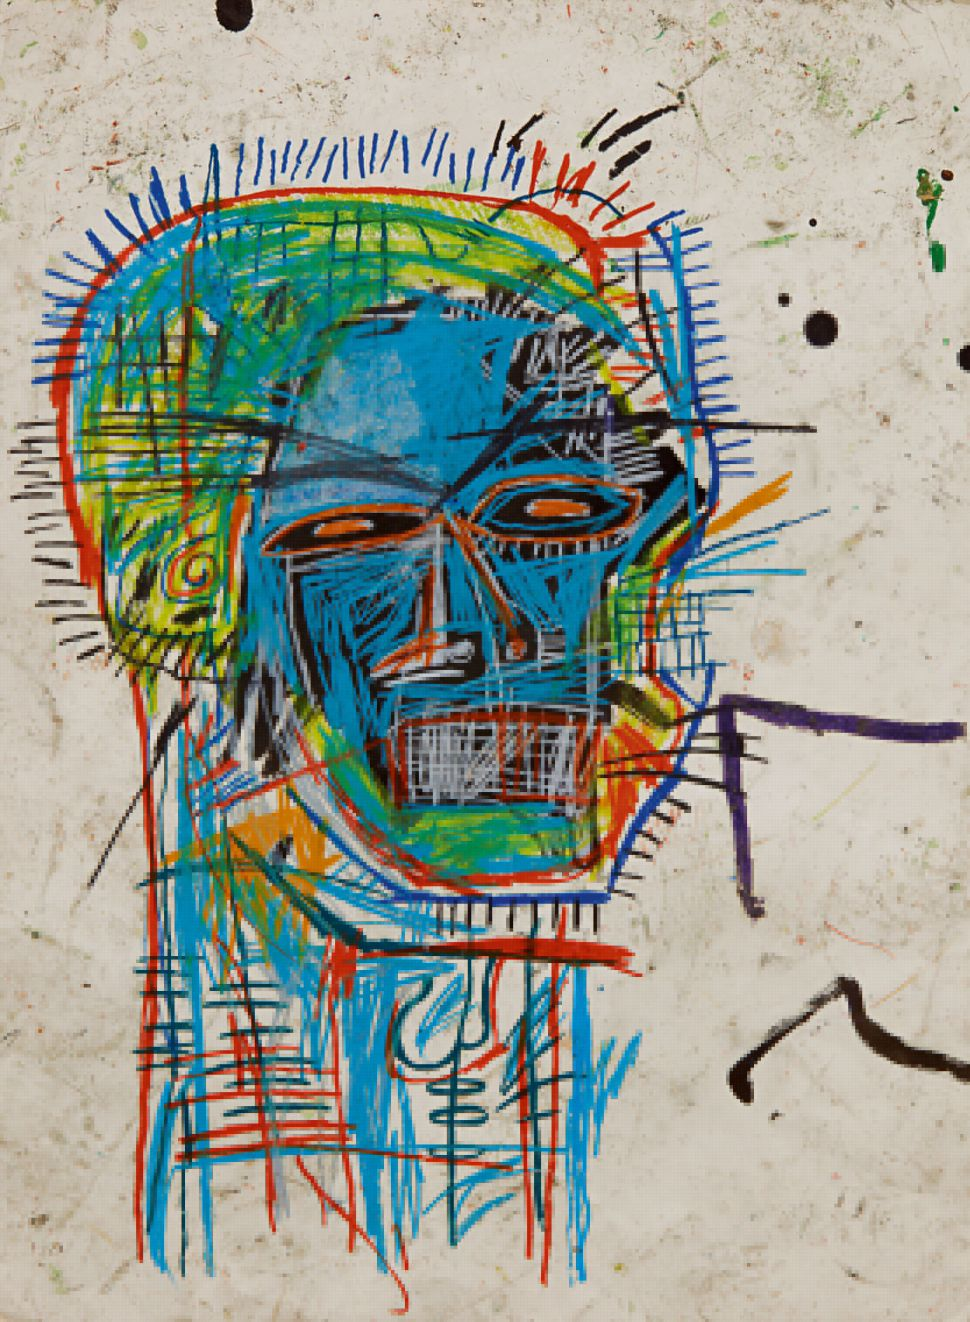 Jean-Michel Basquiat's 'Untitled (Head)' Expected to Sell for $12 Million